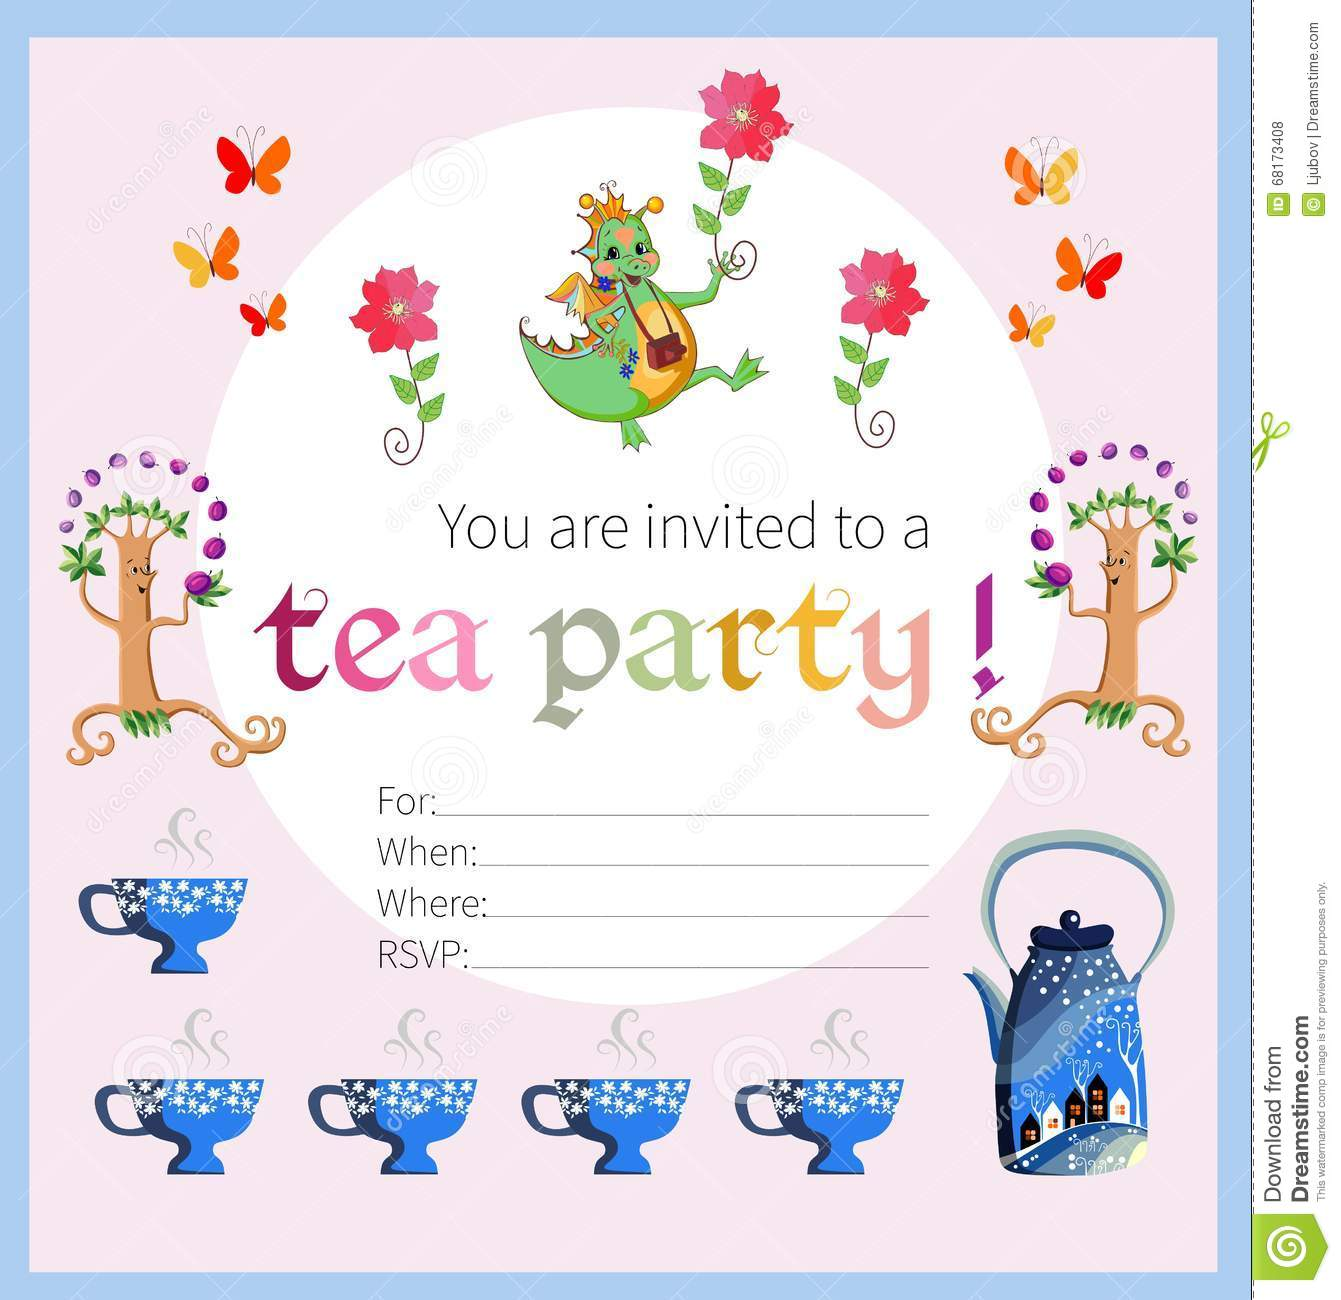 Tea Party Invitation For Kids Vector Image 68173408 – Kids Tea Party Invitations